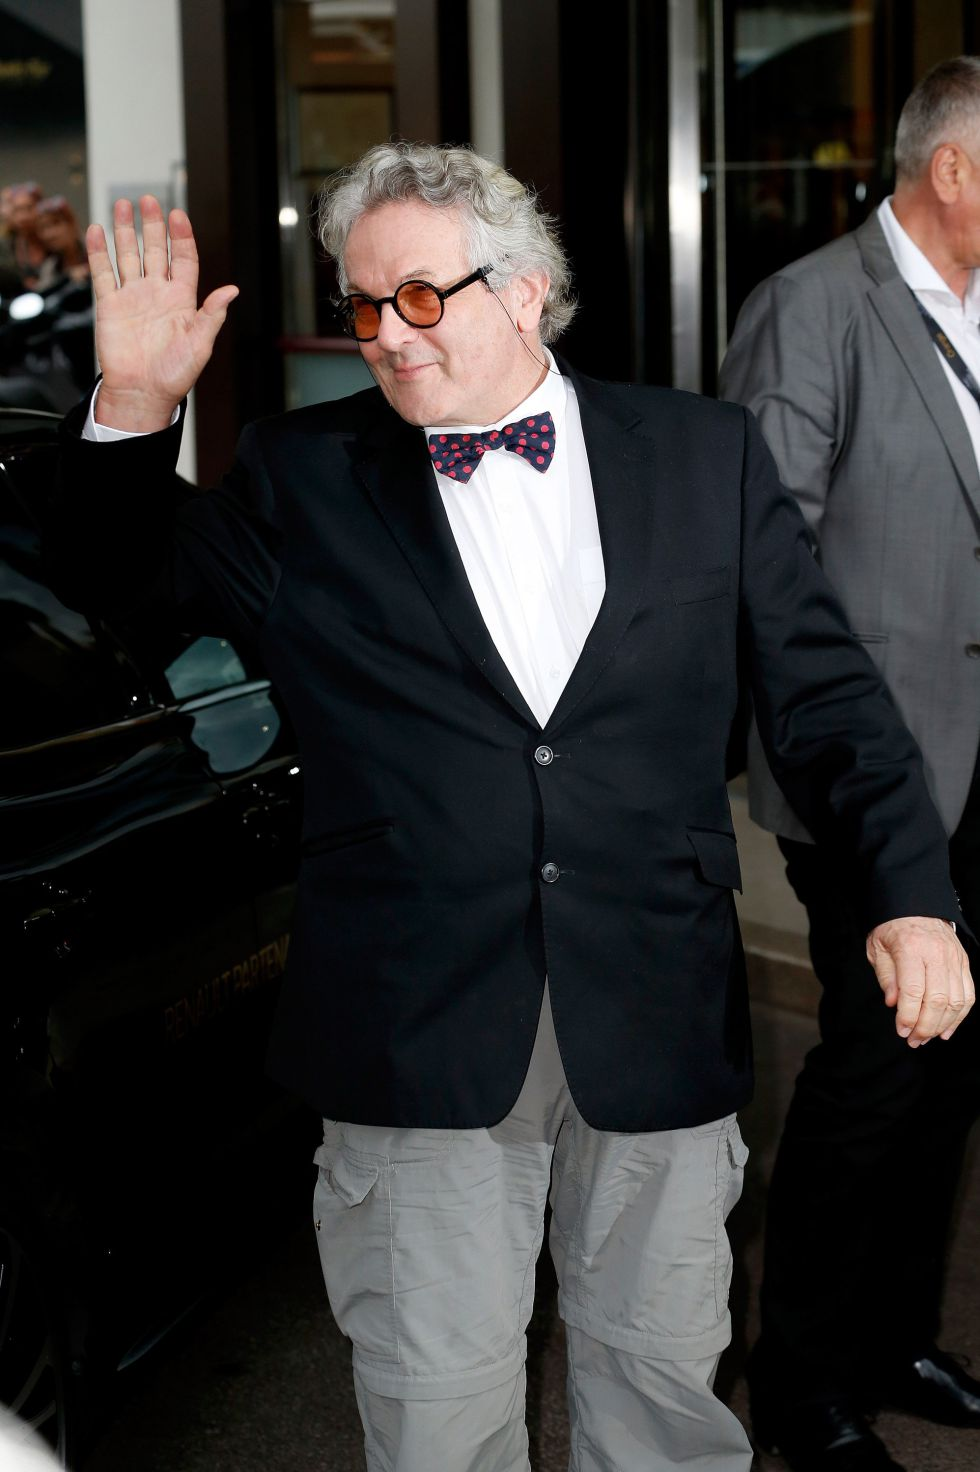 CANNES, FRANCE - MAY 10: George Miller is seen arriving at Jury Members Welcome Cocktail at Hotel Martinez during the annual 69th Cannes Film Festival at on May 10, 2016 in Cannes, France. (Photo by Luca Teuchmann/GC Images)